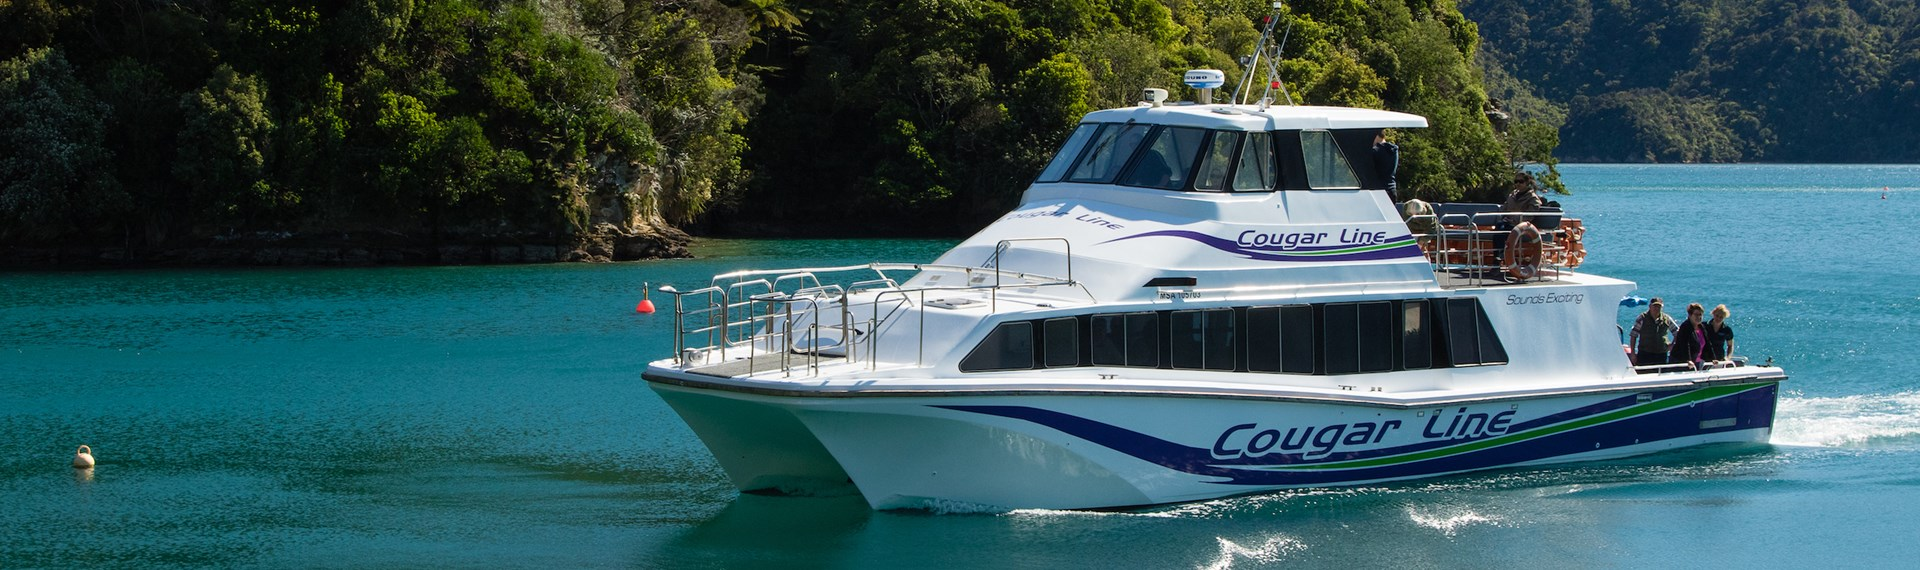 A Cougar Line boat with passengers onboard cruises into a calm bay in the Queen Charlotte Sound/Tōtaranui, Marlborough Sounds, New Zealand.